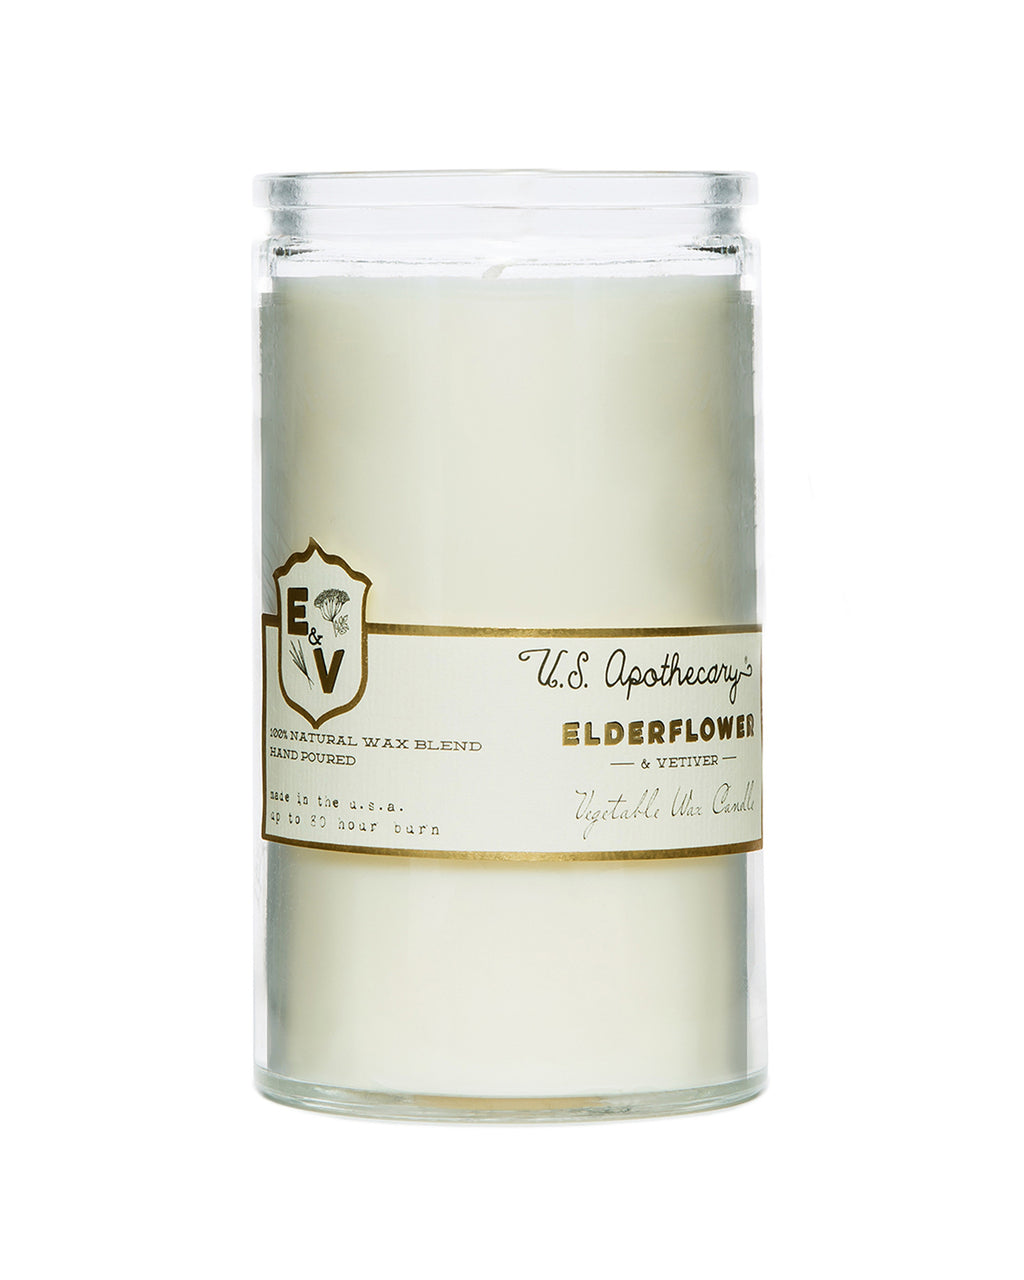 Elderflower & Vetiver candle